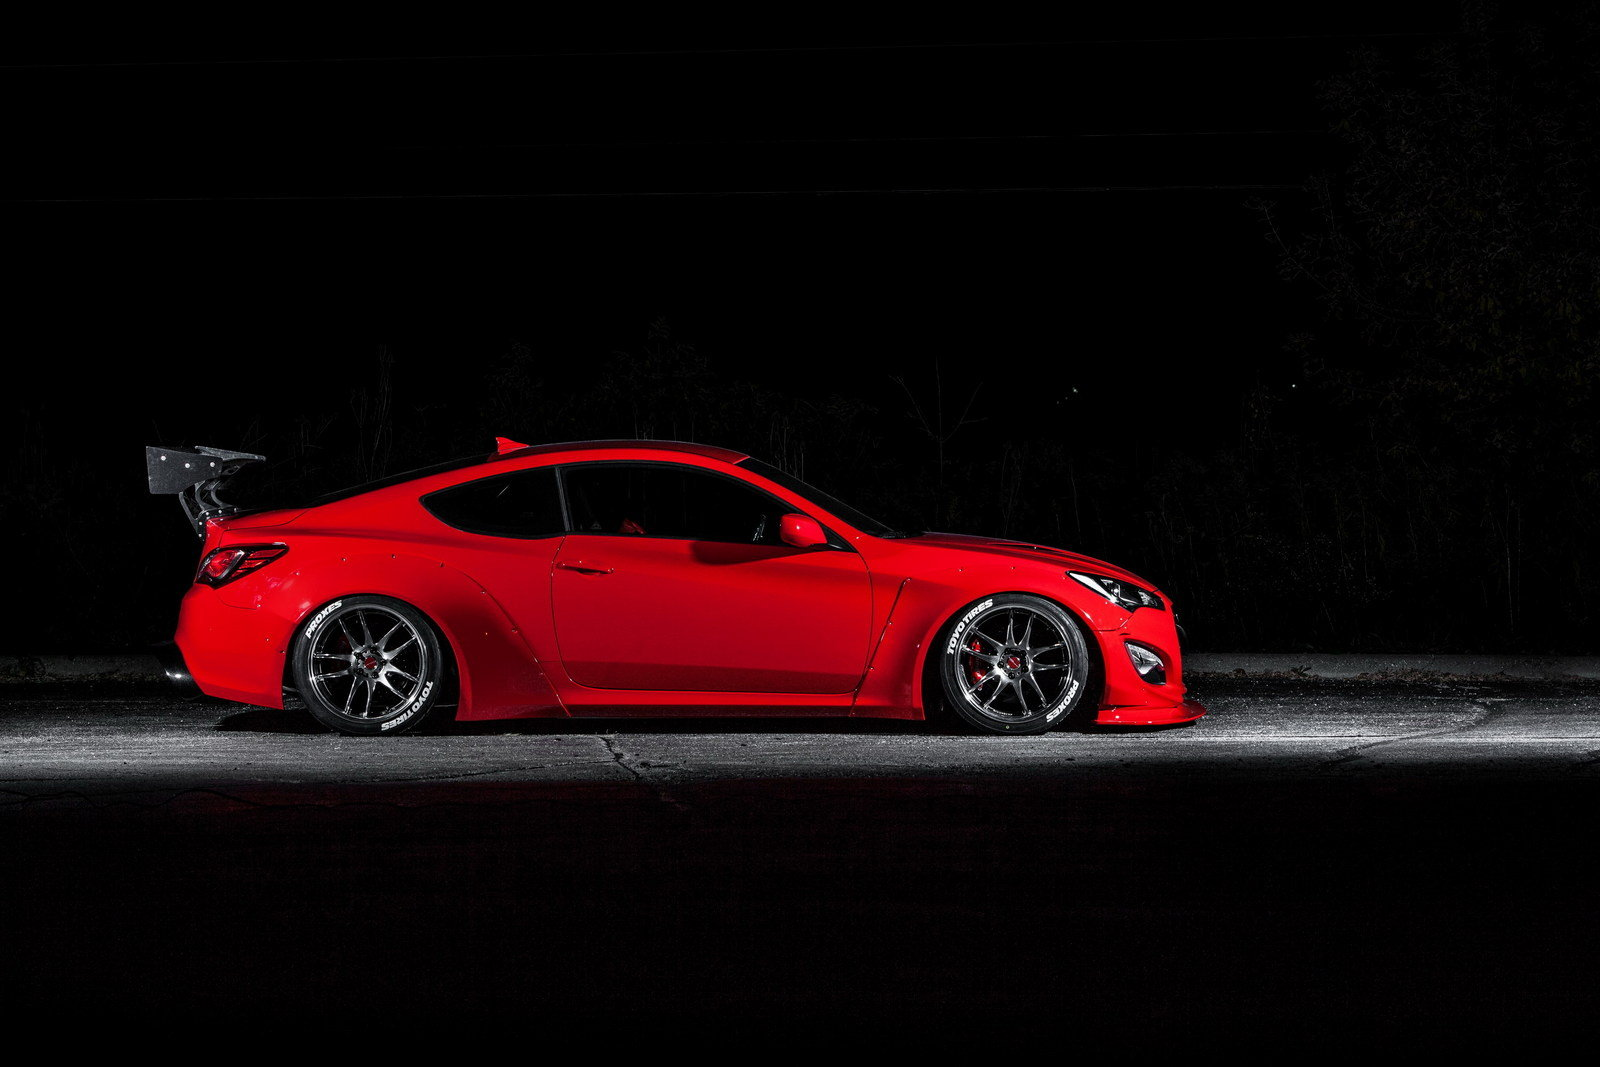 2015 hyundai genesis coupe by blood type racing picture 576184 car review top speed. Black Bedroom Furniture Sets. Home Design Ideas